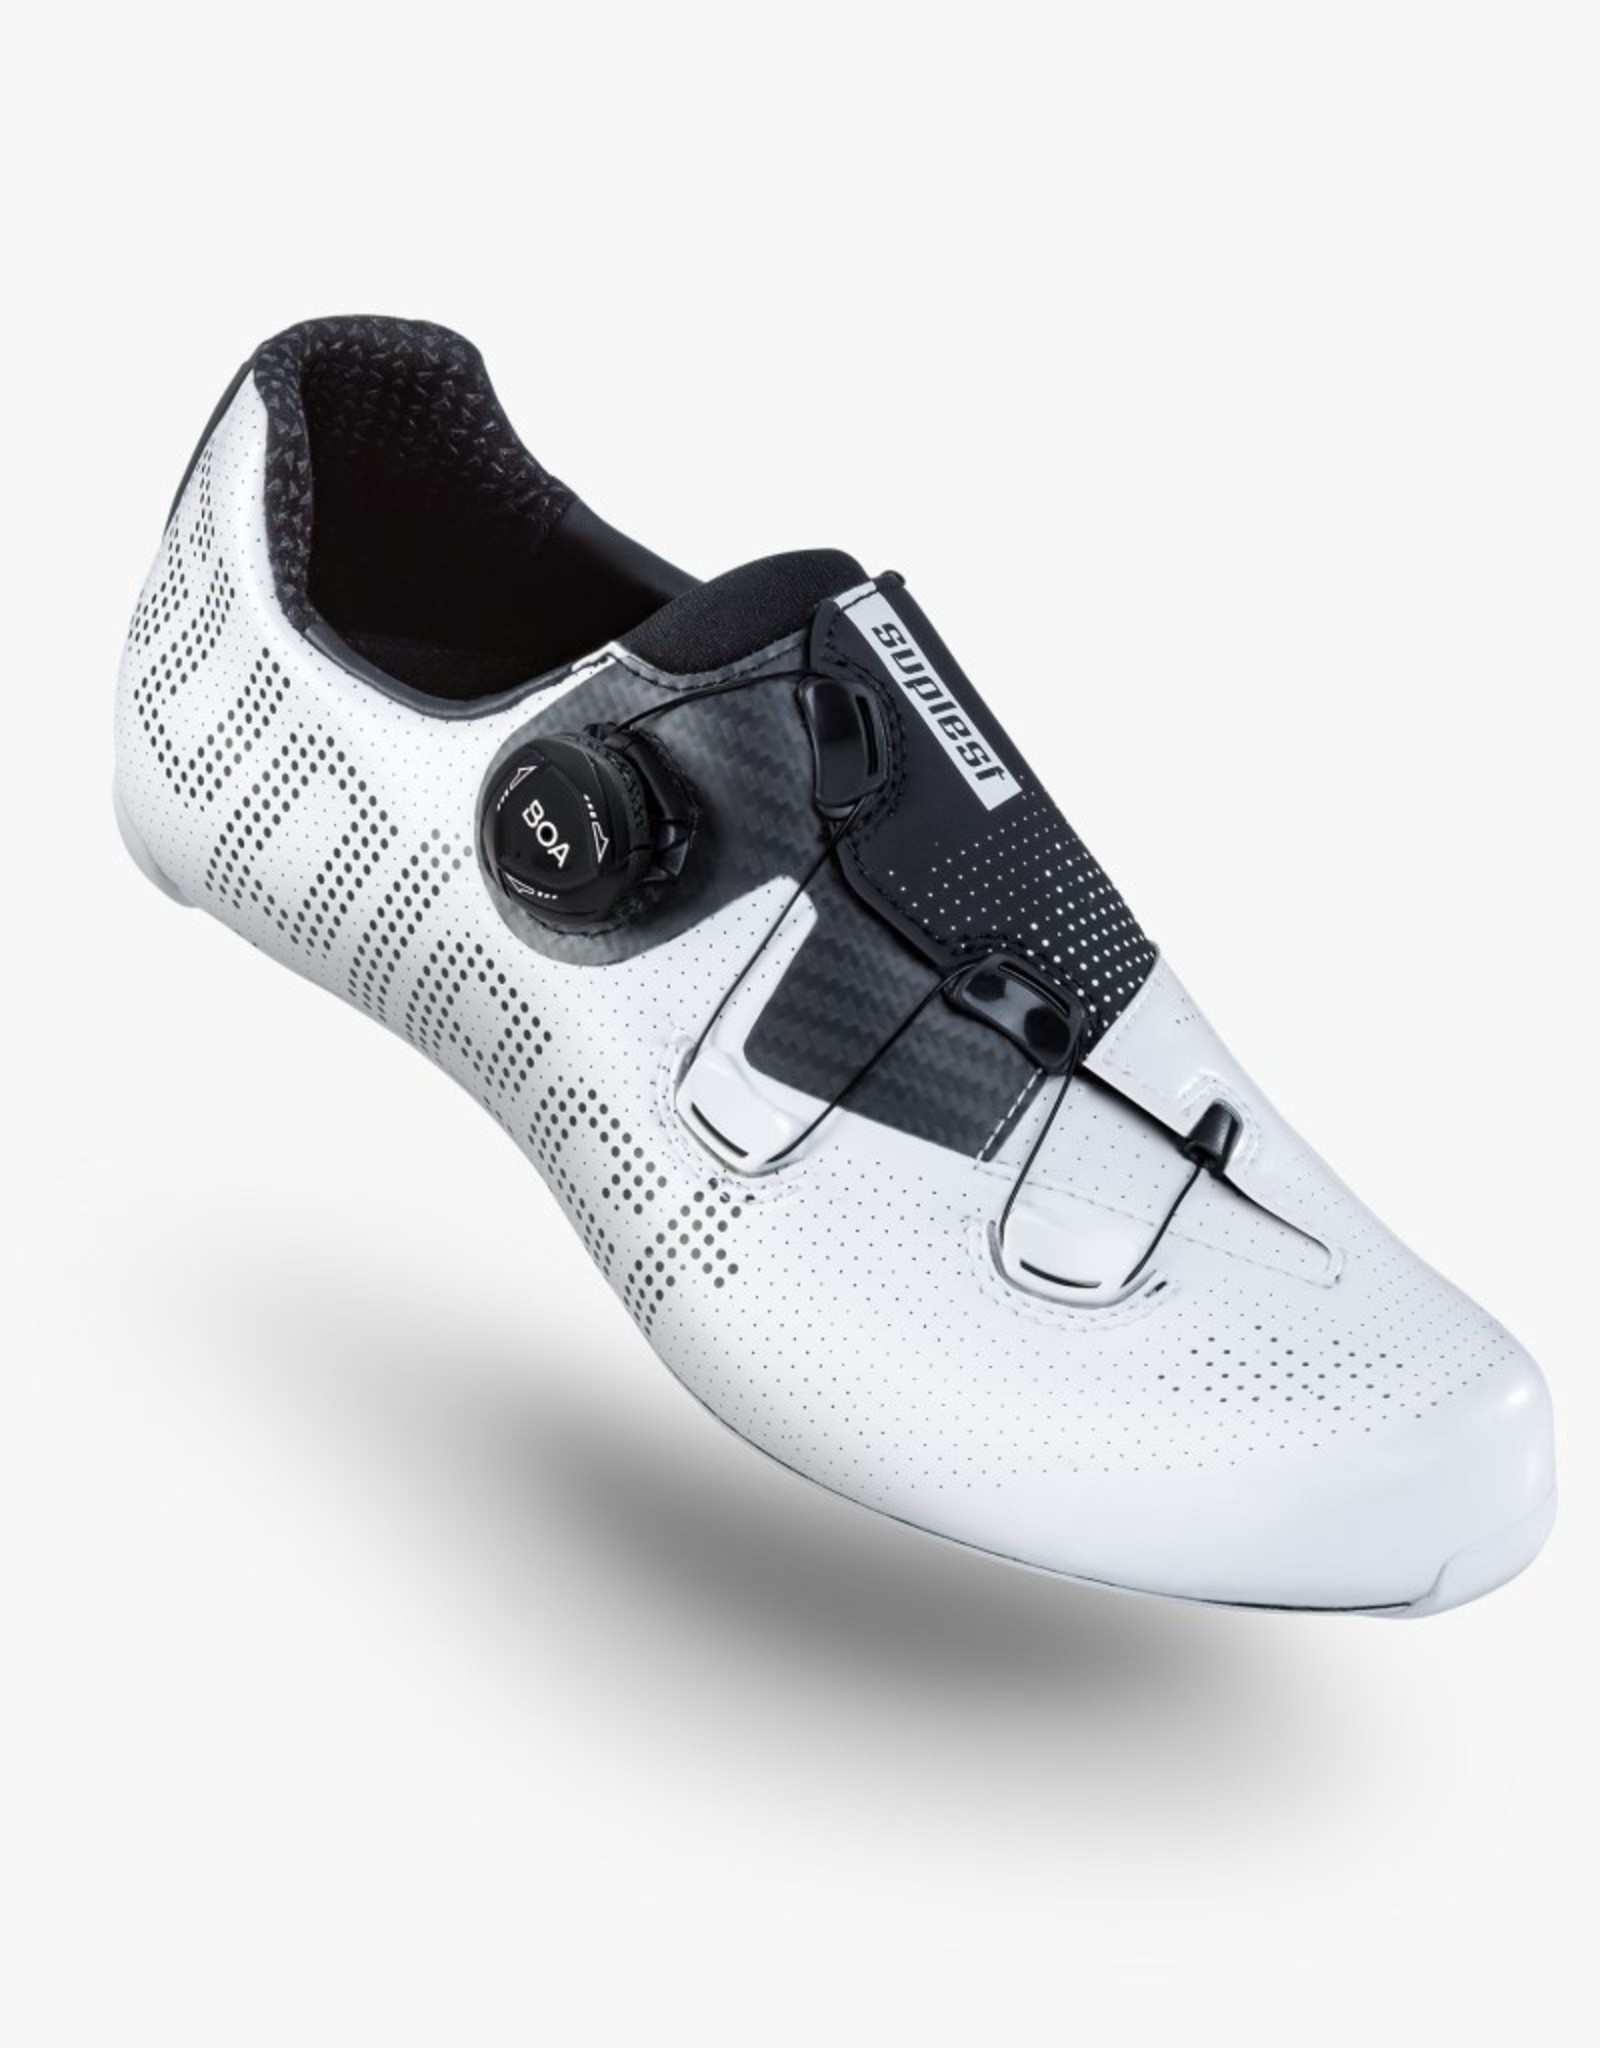 Suplest Cycling Shoes EDGE+ Road Performance - white/black